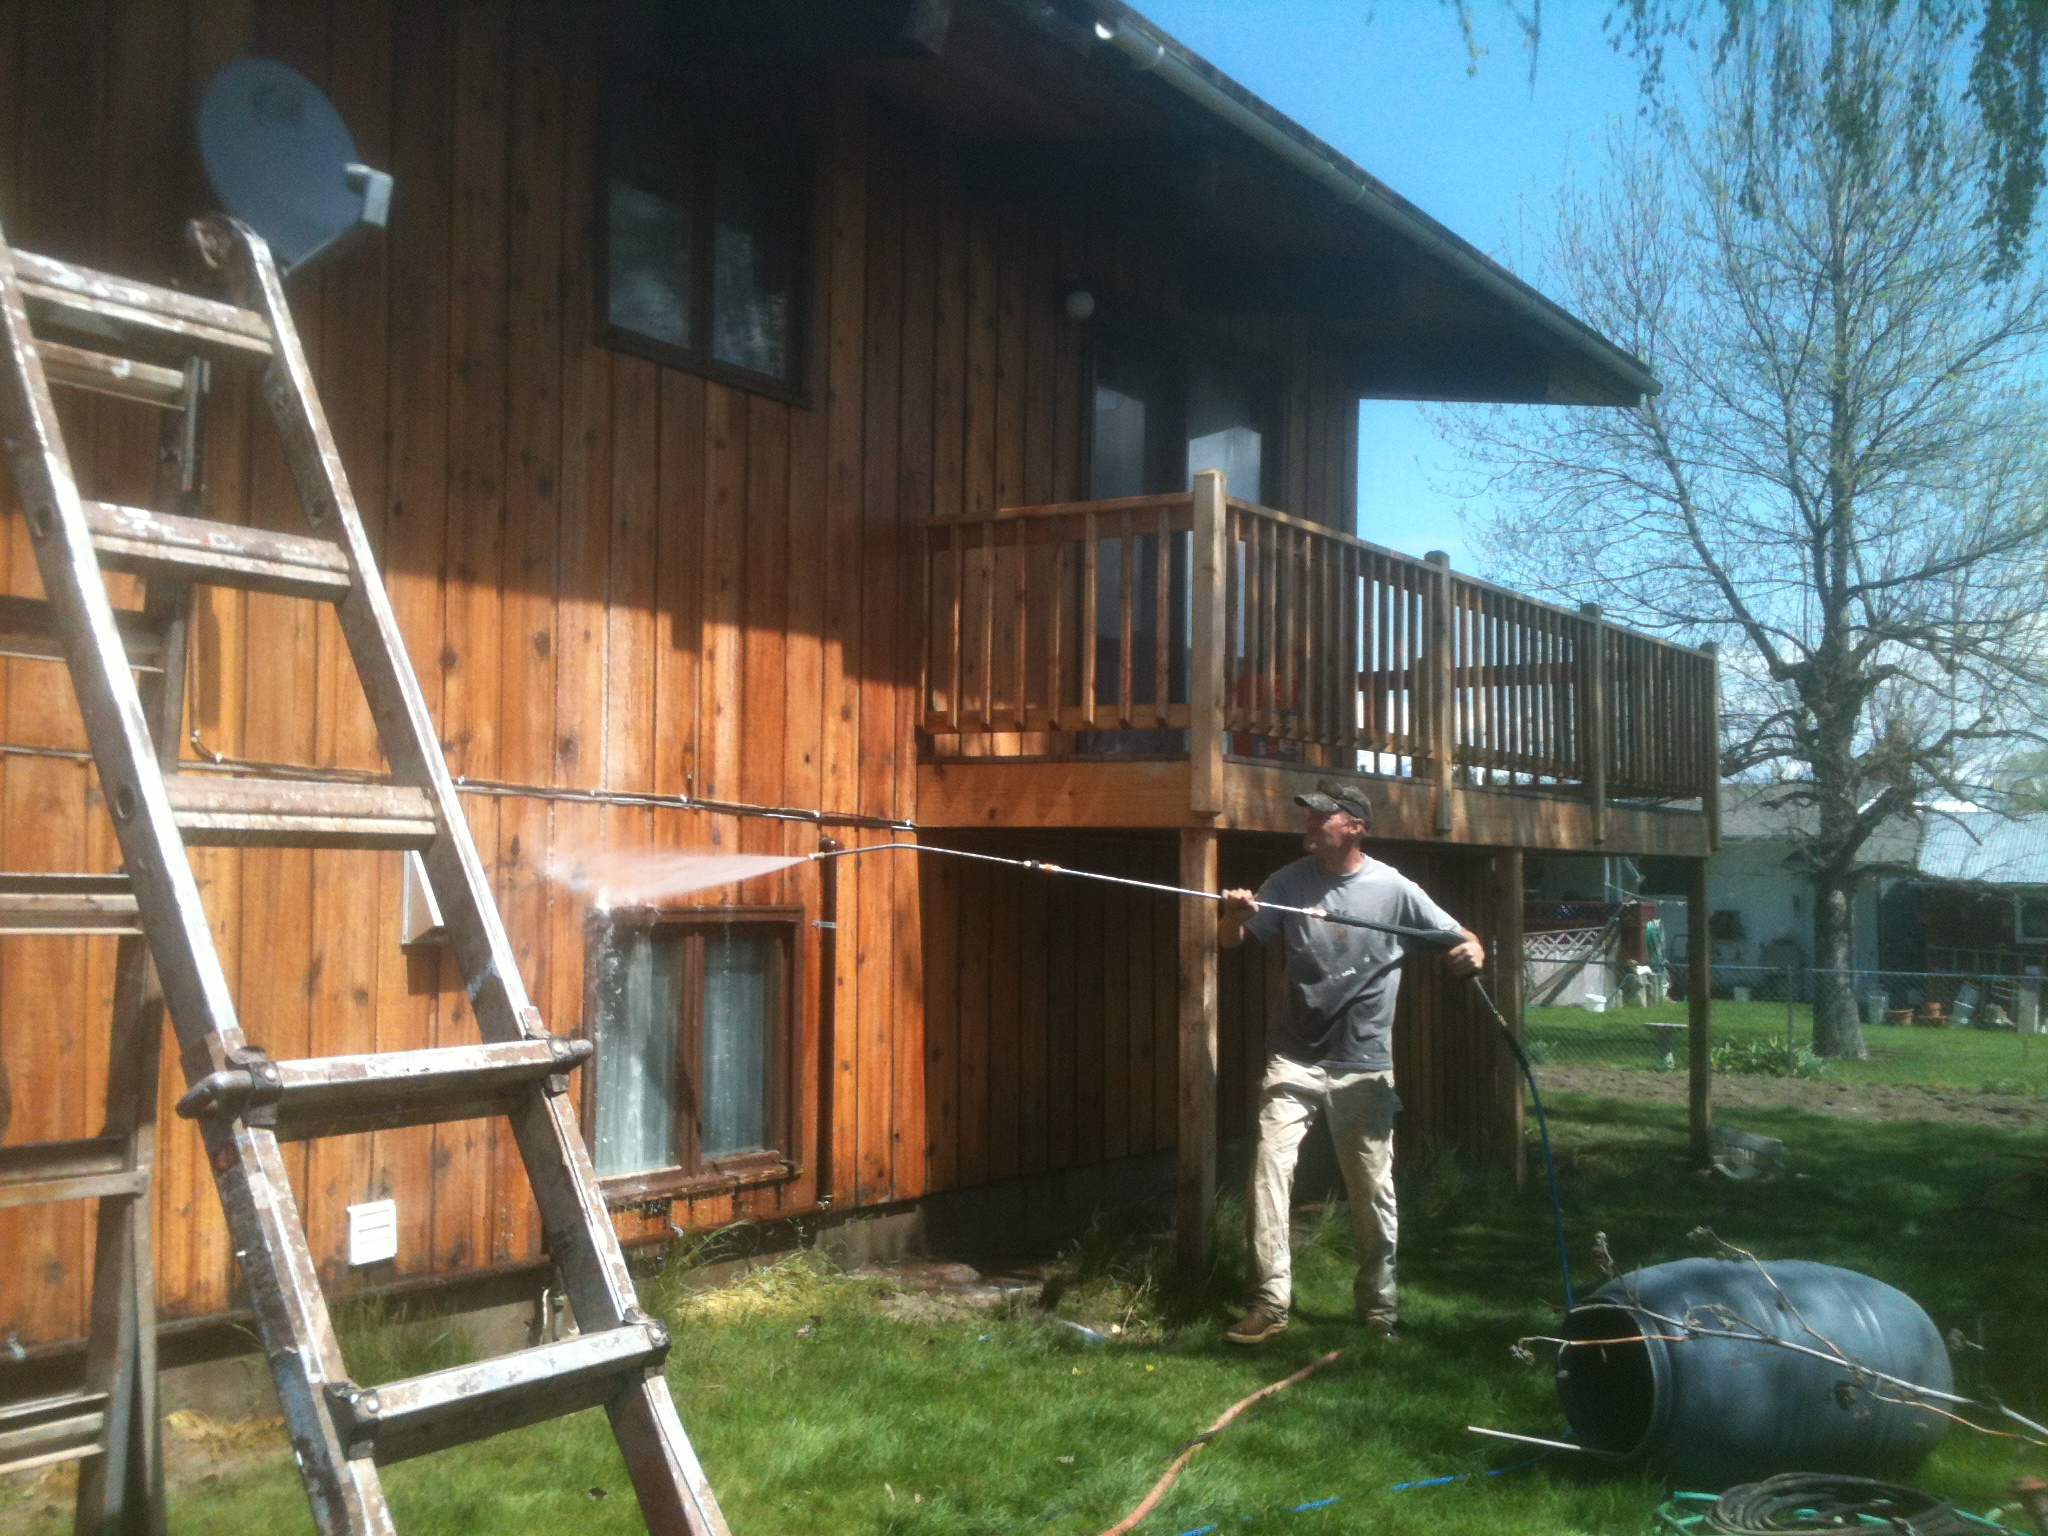 Wood restoration and painting services in Whitefish, MT and The Flathead Valley